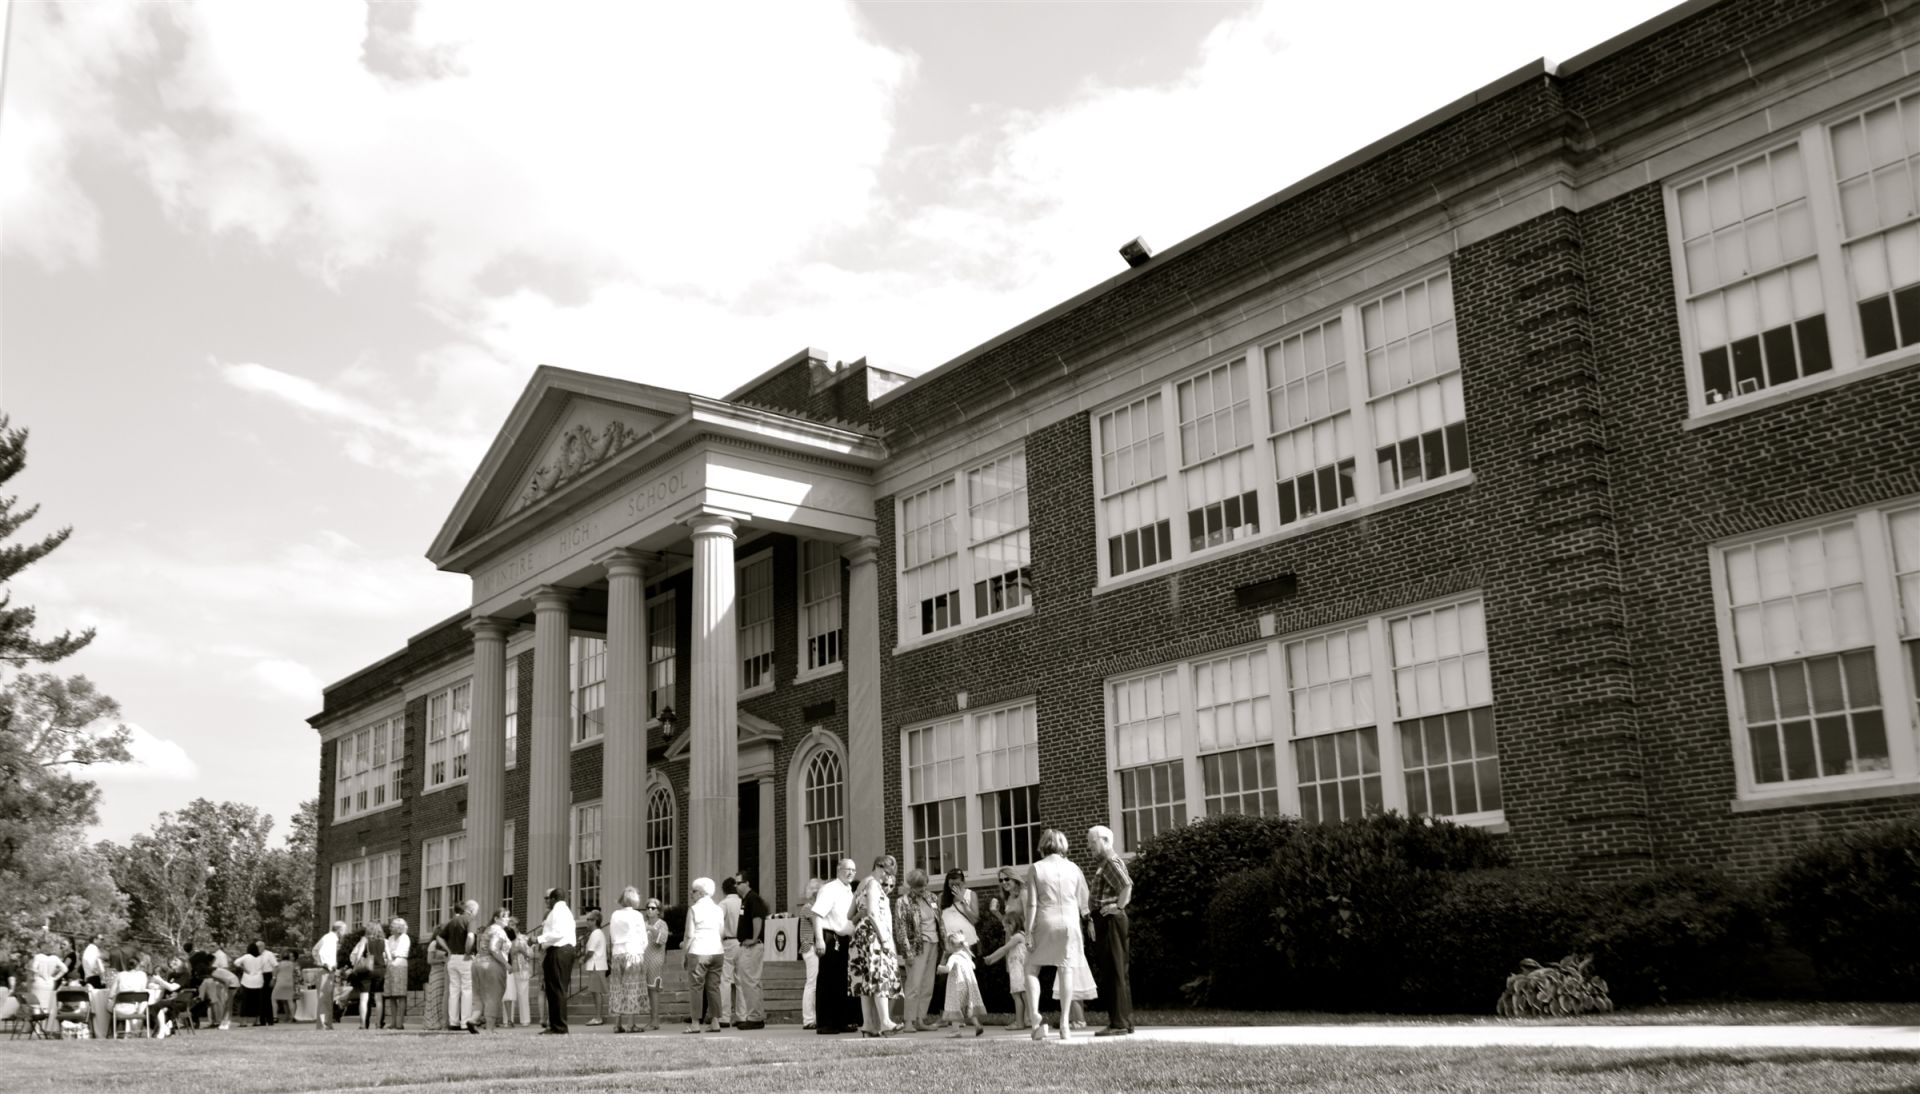 The historic McIntire building has been home to The Covenant School for 35 years.